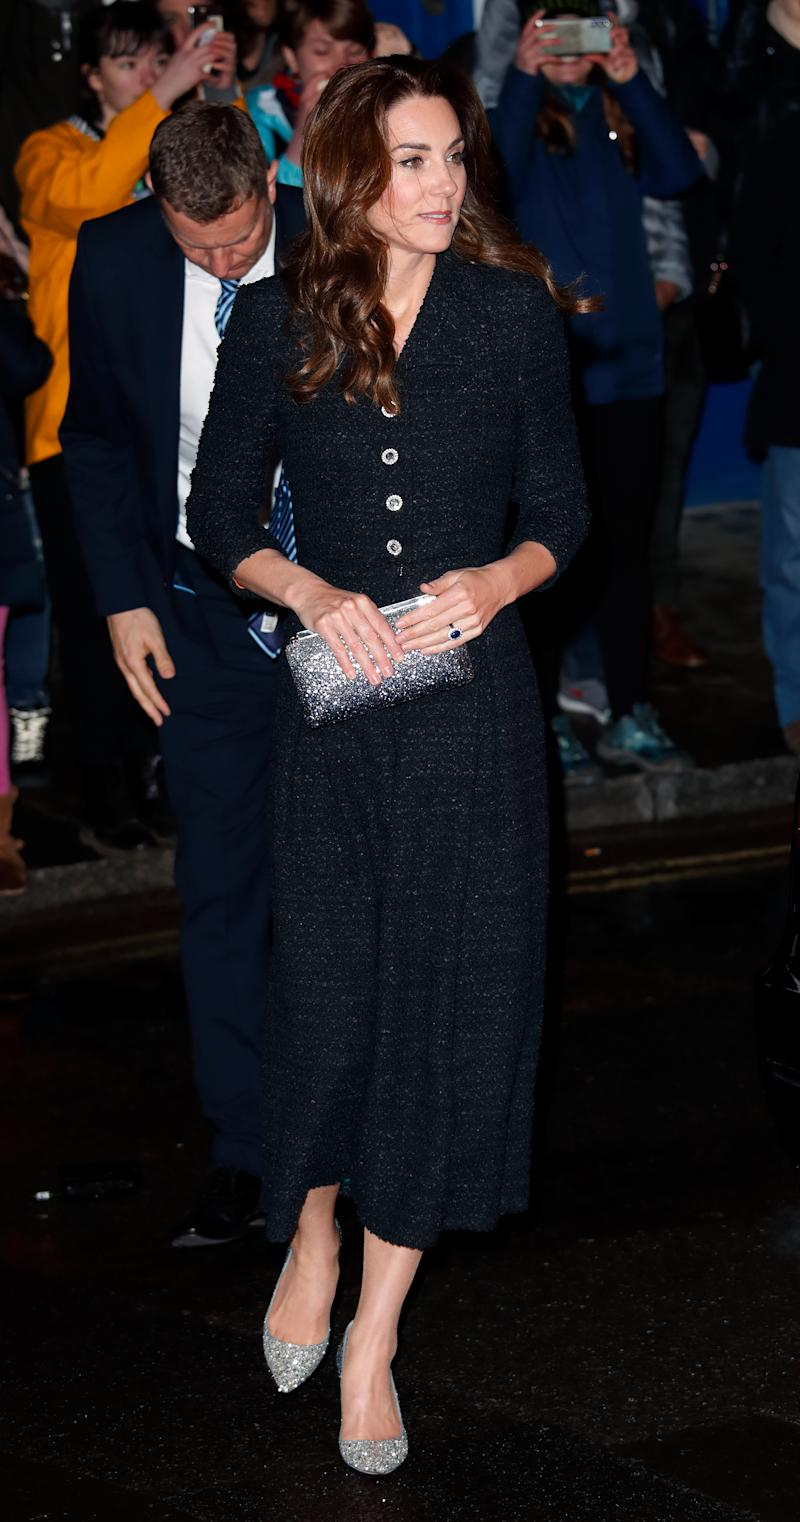 """LONDON, UNITED KINGDOM - FEBRUARY 25: (EMBARGOED FOR PUBLICATION IN UK NEWSPAPERS UNTIL 24 HOURS AFTER CREATE DATE AND TIME) Catherine, Duchess of Cambridge attends a charity performance of """"Dear Evan Hansen"""" in aid of The Royal Foundation at the Noel Coward Theatre on February 25, 2020 in London, England. (Photo by Max Mumby/Indigo/Getty Images)"""